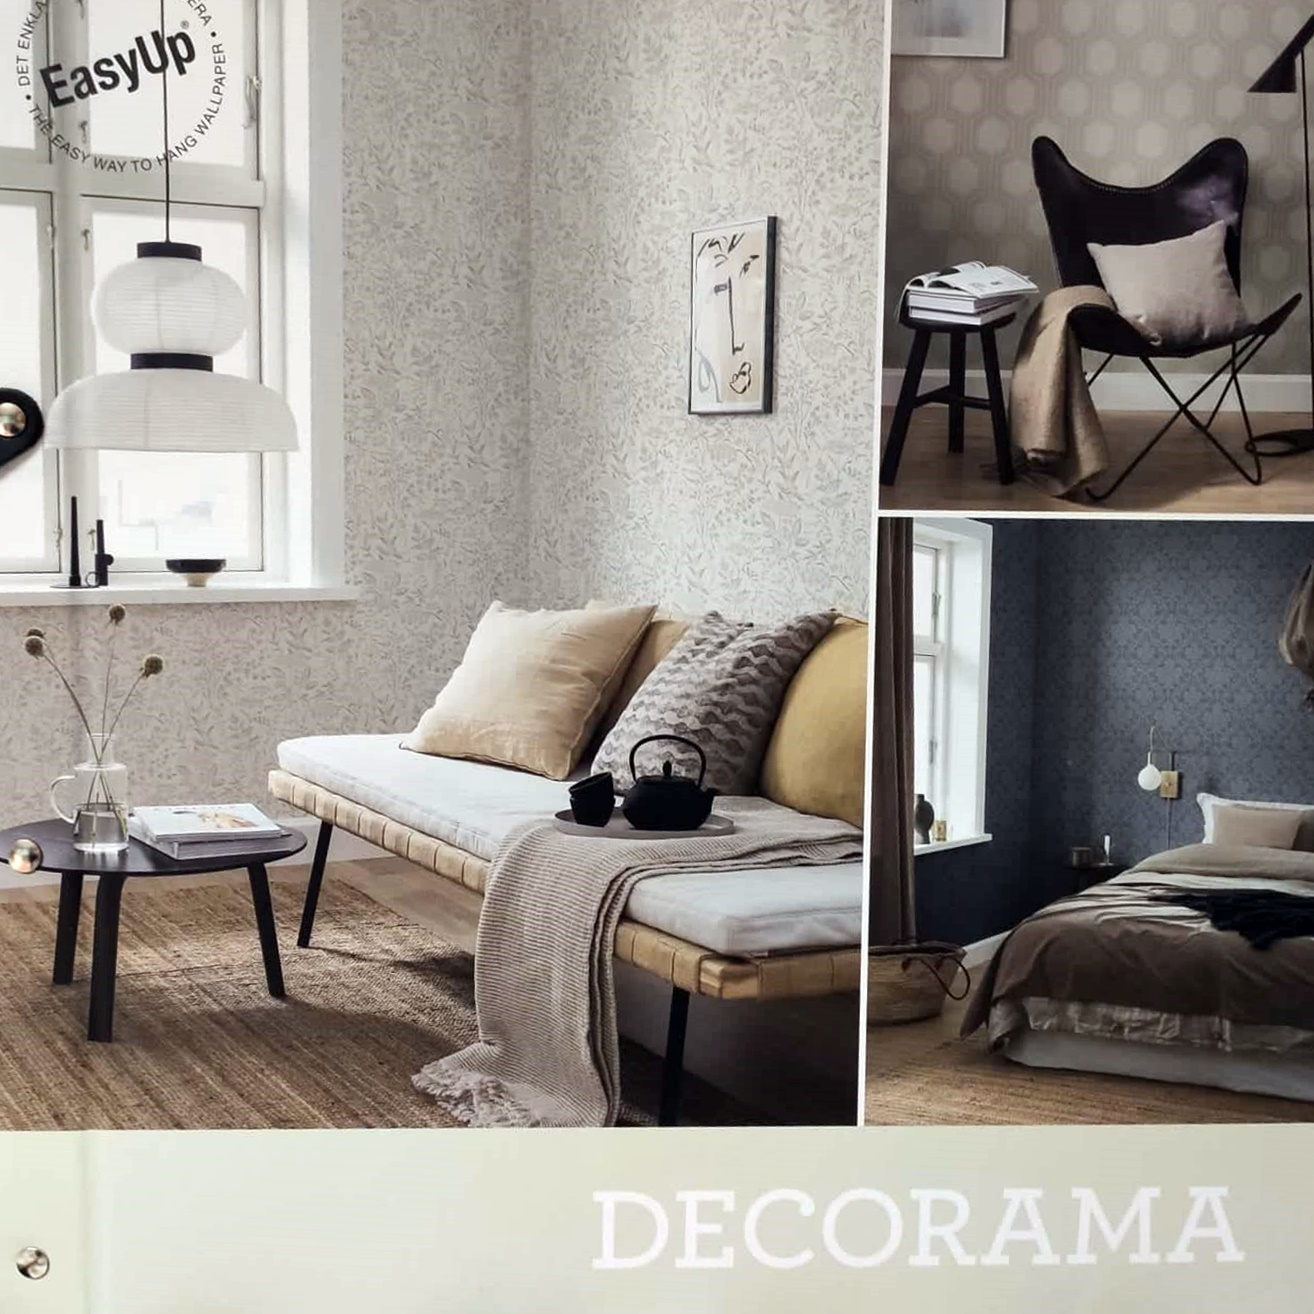 Decorama 19 tapéta